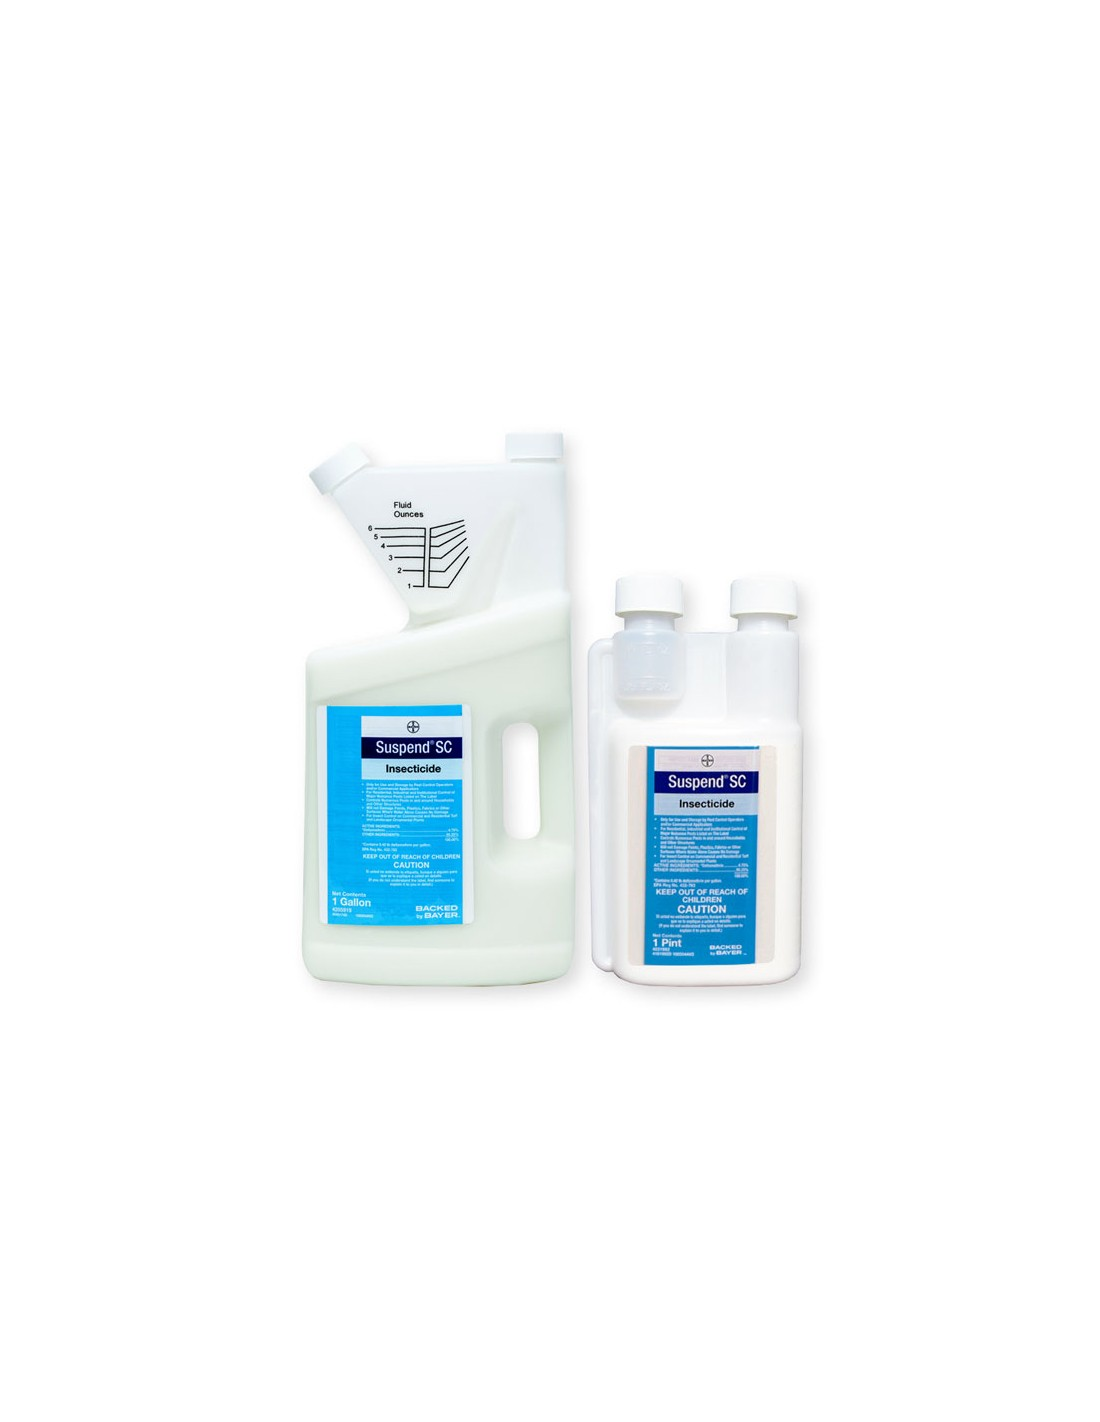 Could this product be used as a barrier spray for Mosquitoes not only killing on contact but repel flying ones?